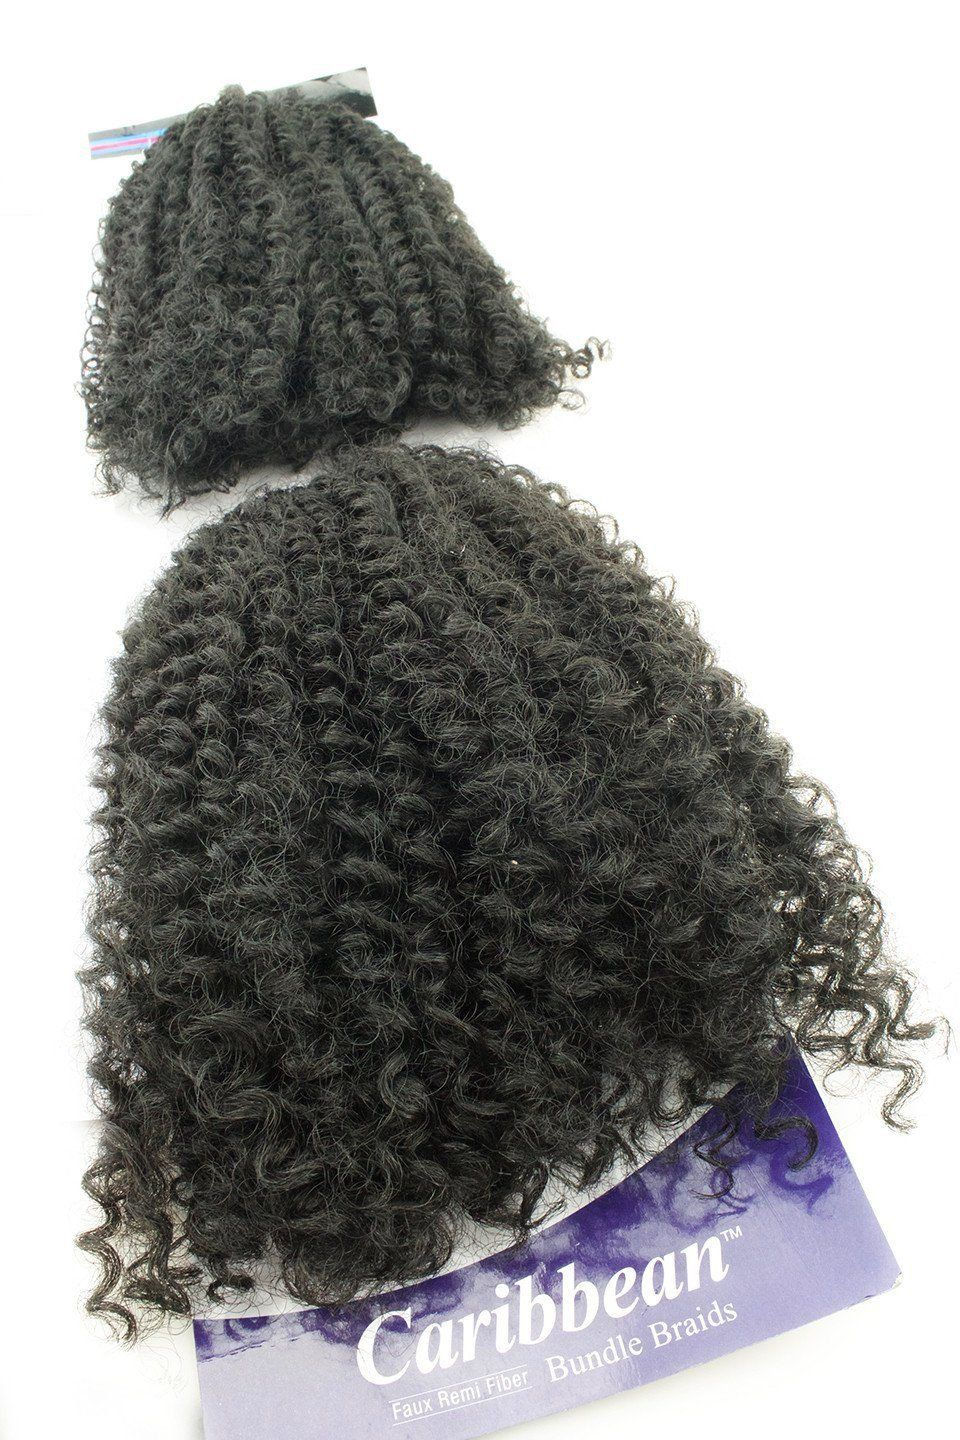 Mane concept caribbean two in one bohemian soft water